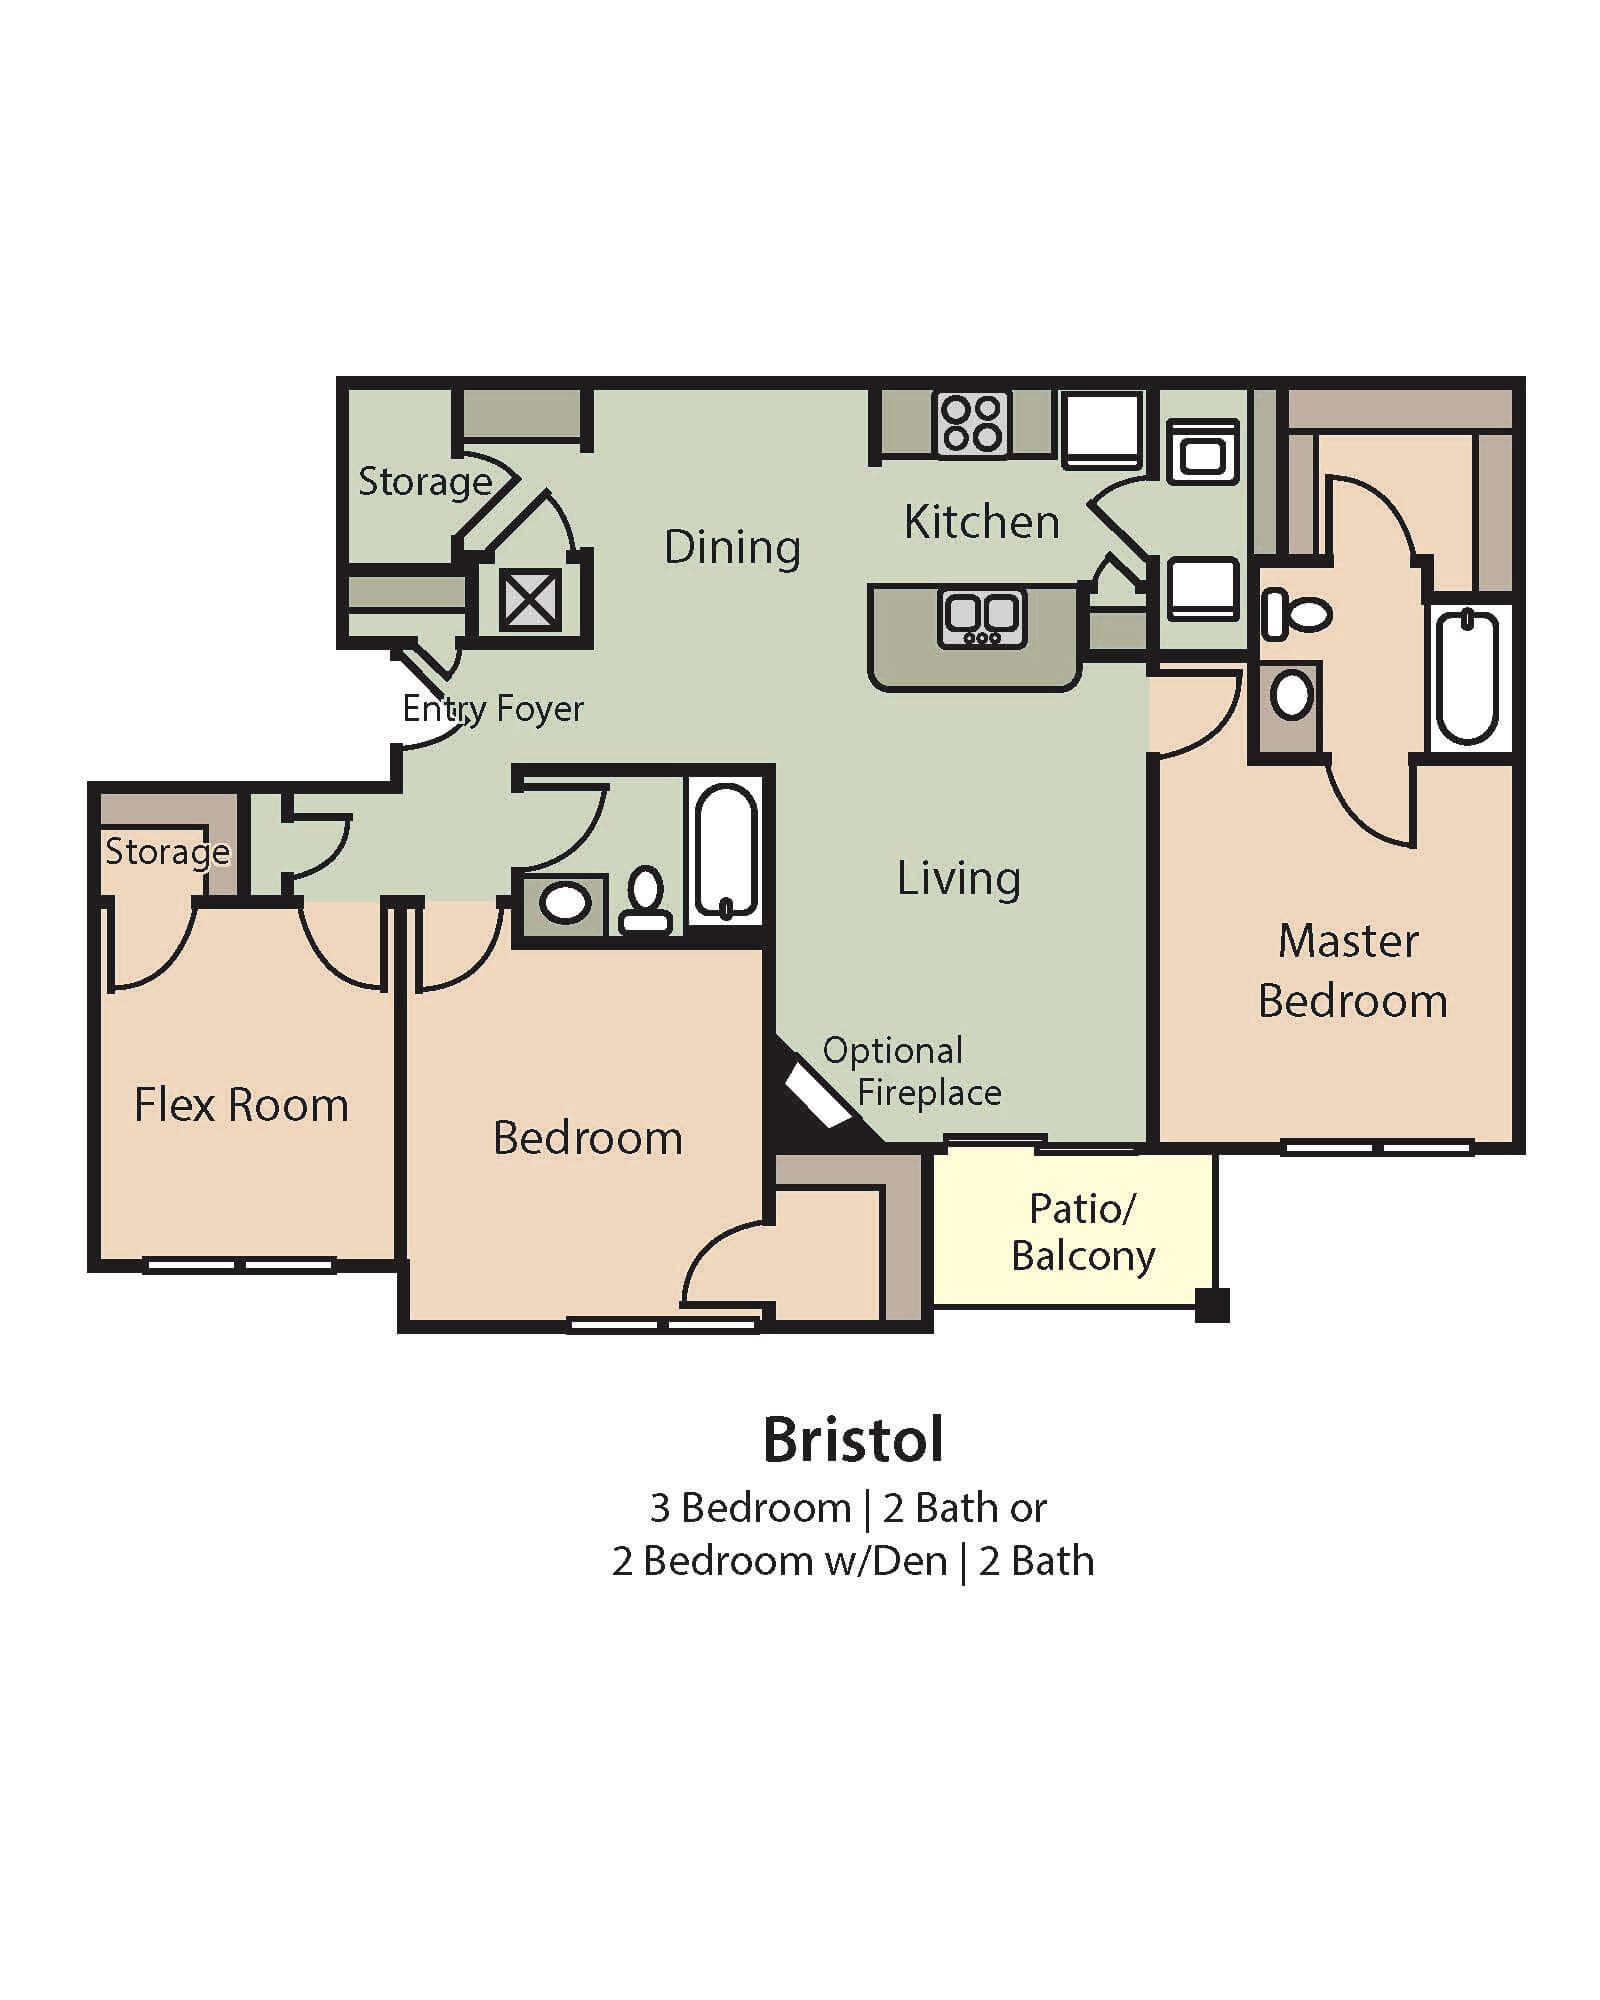 Bristol Floor Plan, 3 Bedrooms, 2 Baths or 2 Bedrooms, a flex room, and 2 baths